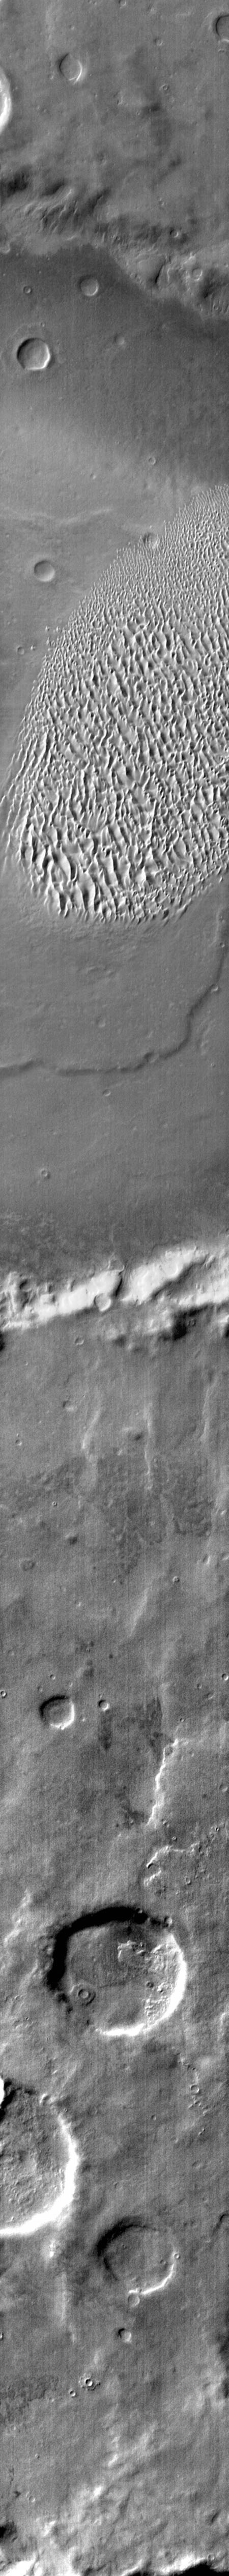 The dunes in this daytime IR image from NASA's 2001 Mars Odyssey spacecraft appear bright because they are warmer than the surrounding crater materials. These dunes are located on the floor of Proctor Crater.